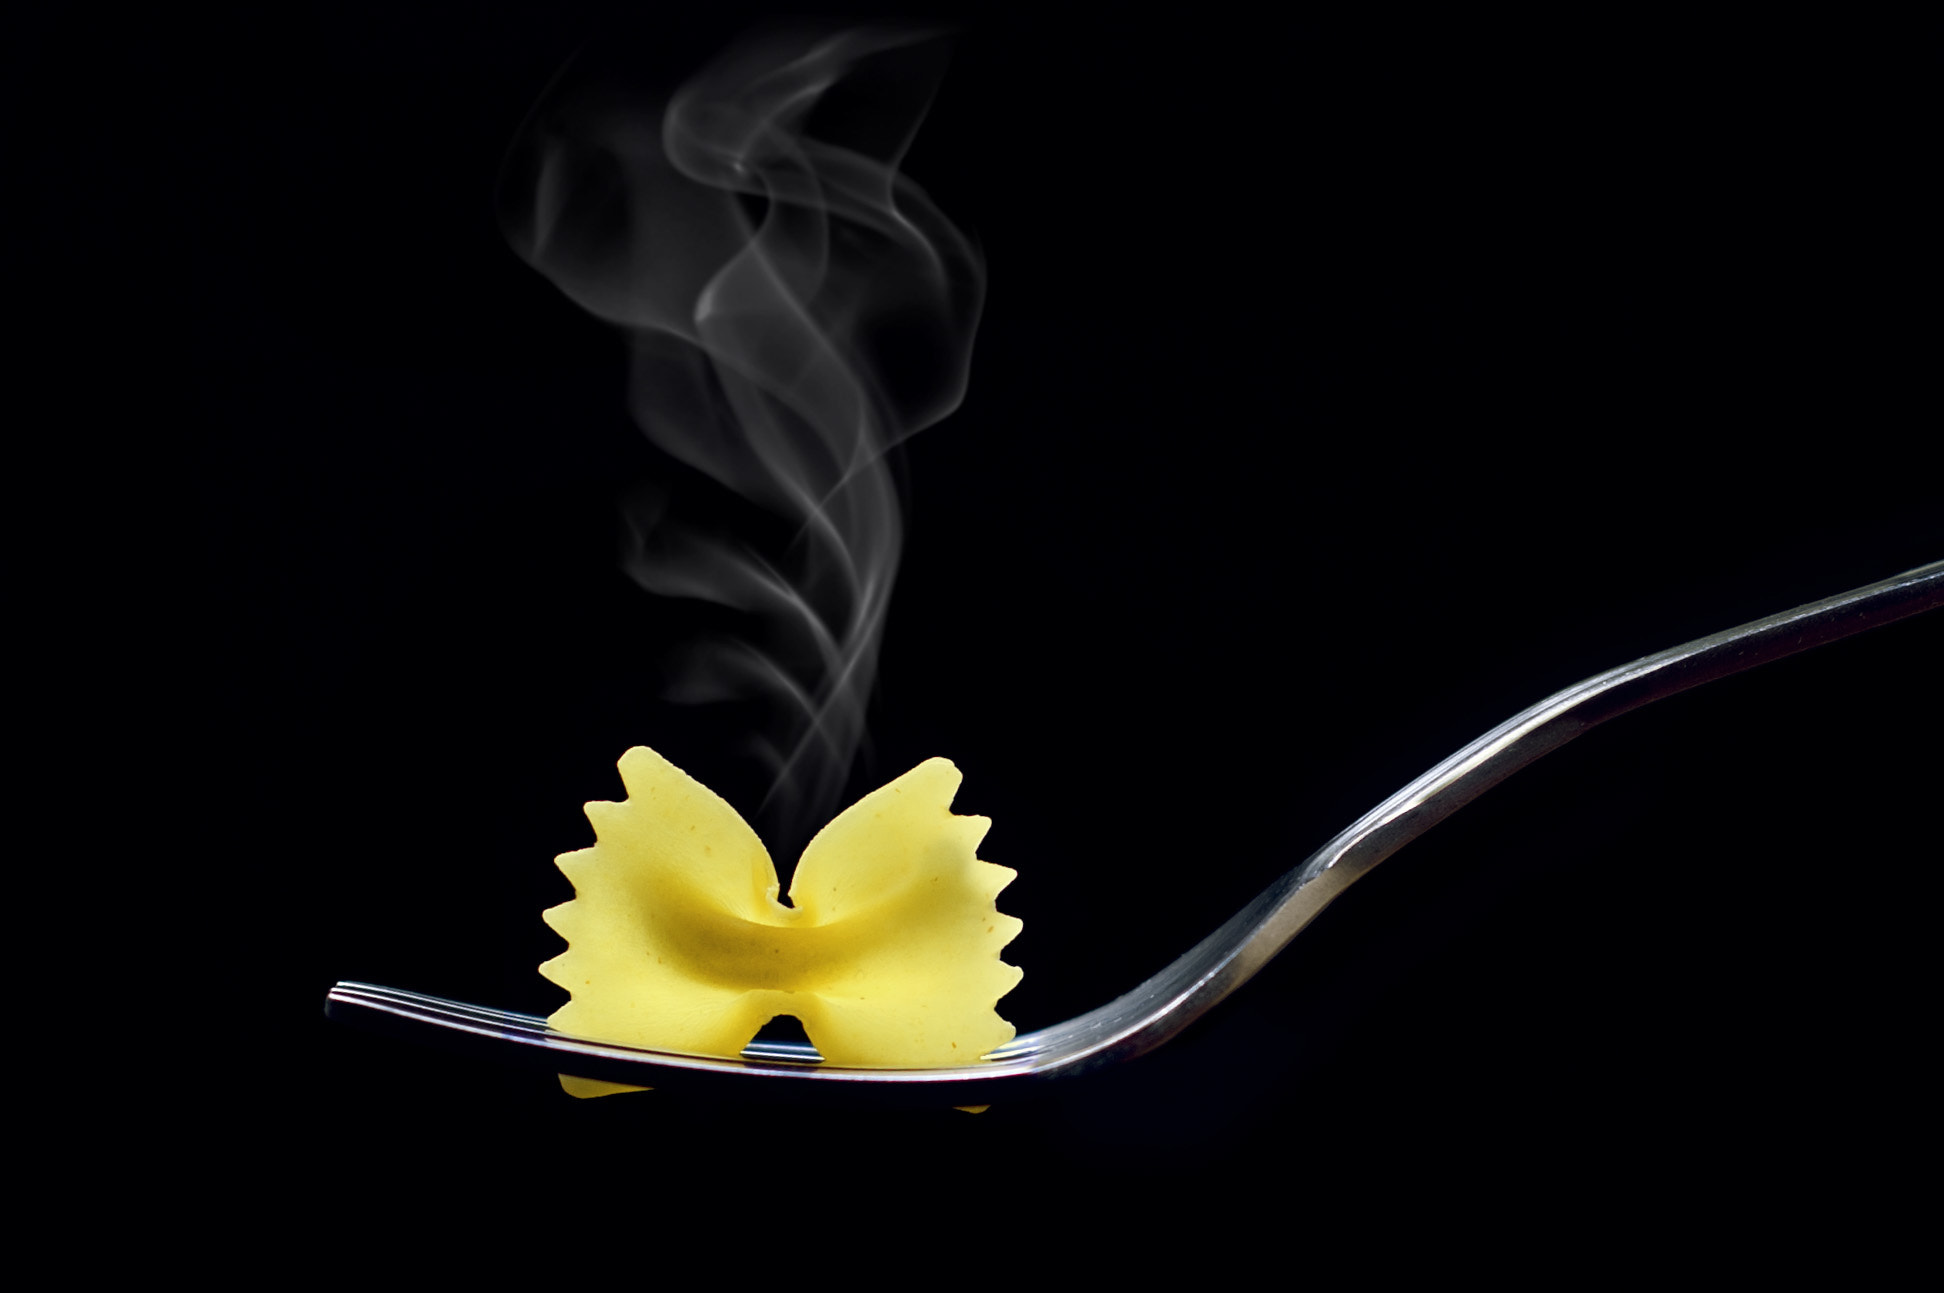 Photograph Macaroni by abduaziz abdullh alroote on 500px